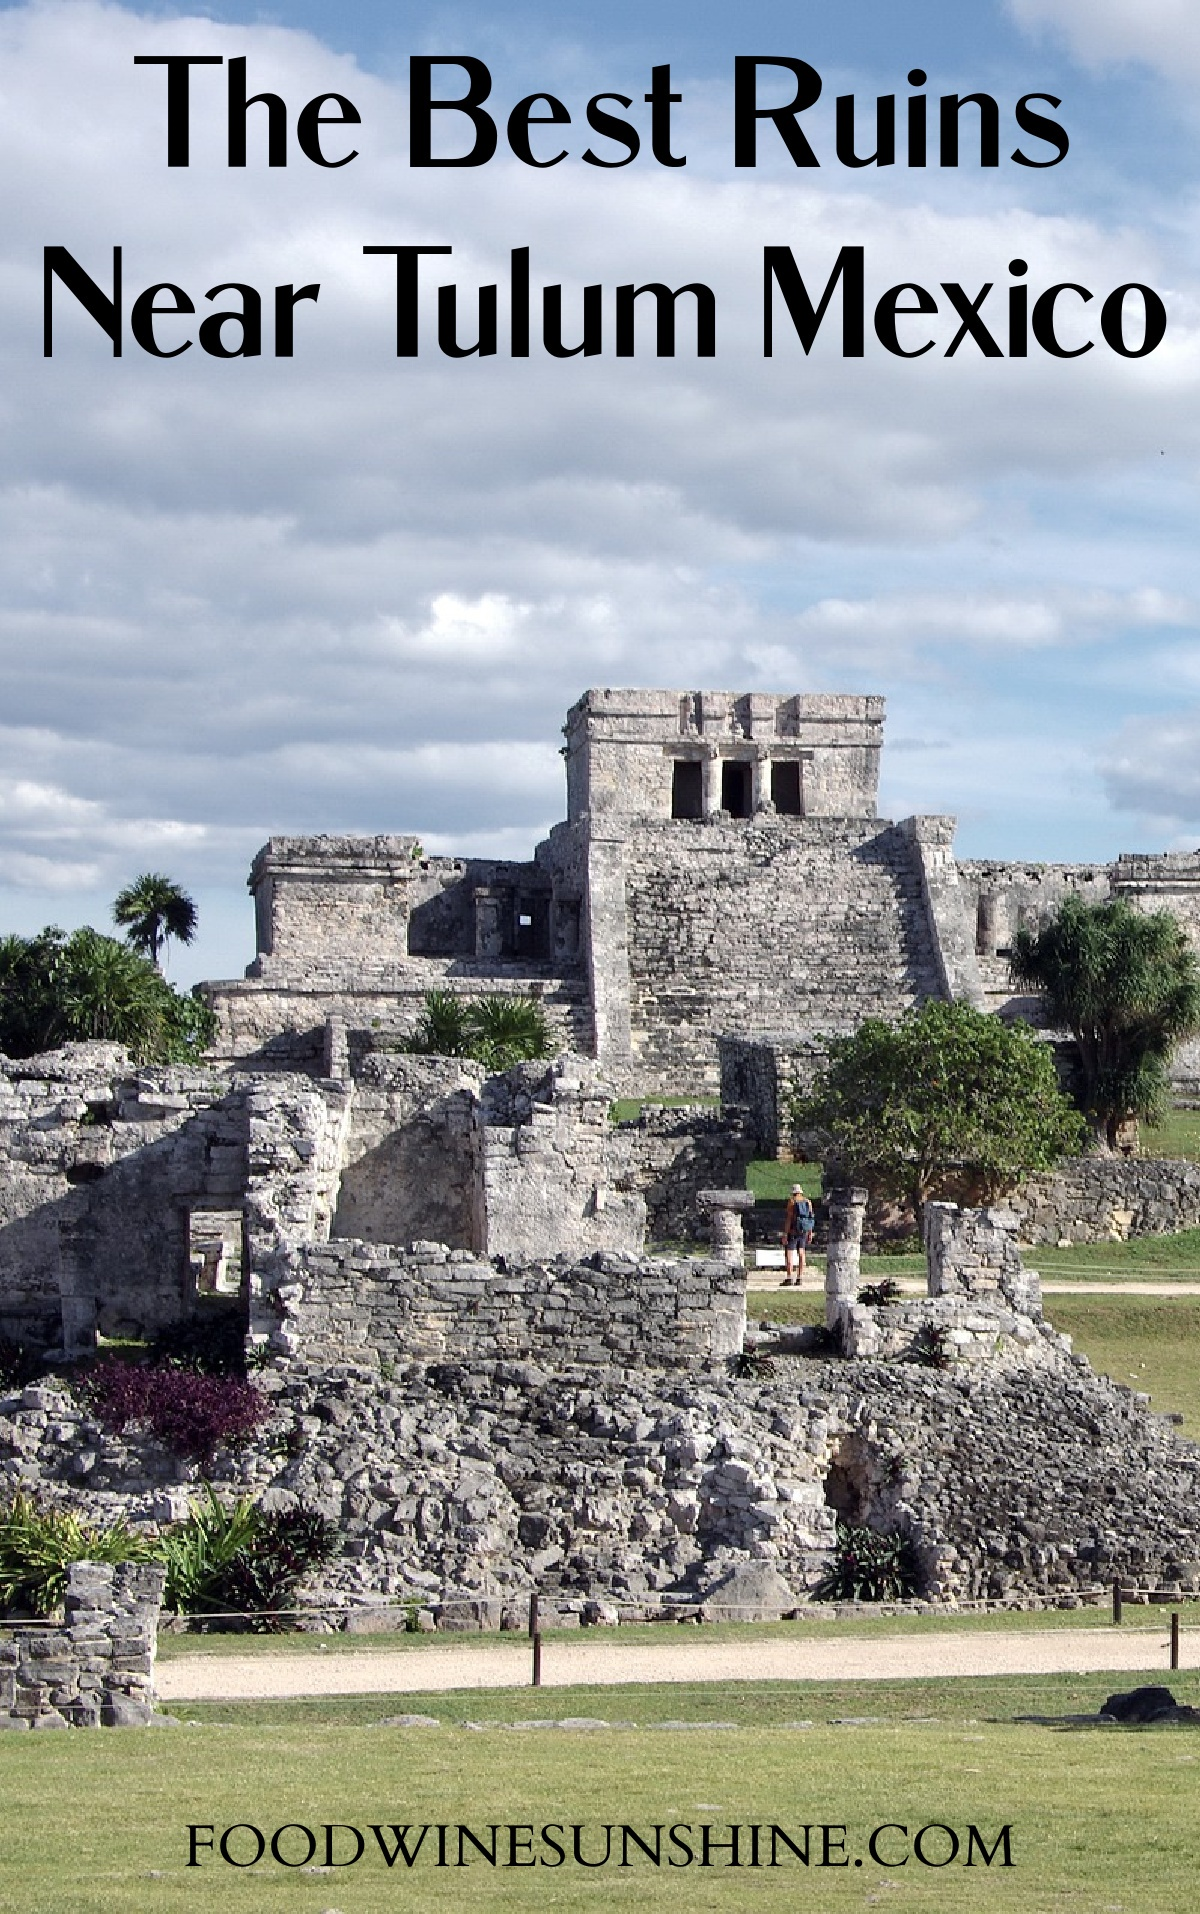 The Best Ruins Near Tulum Mexico